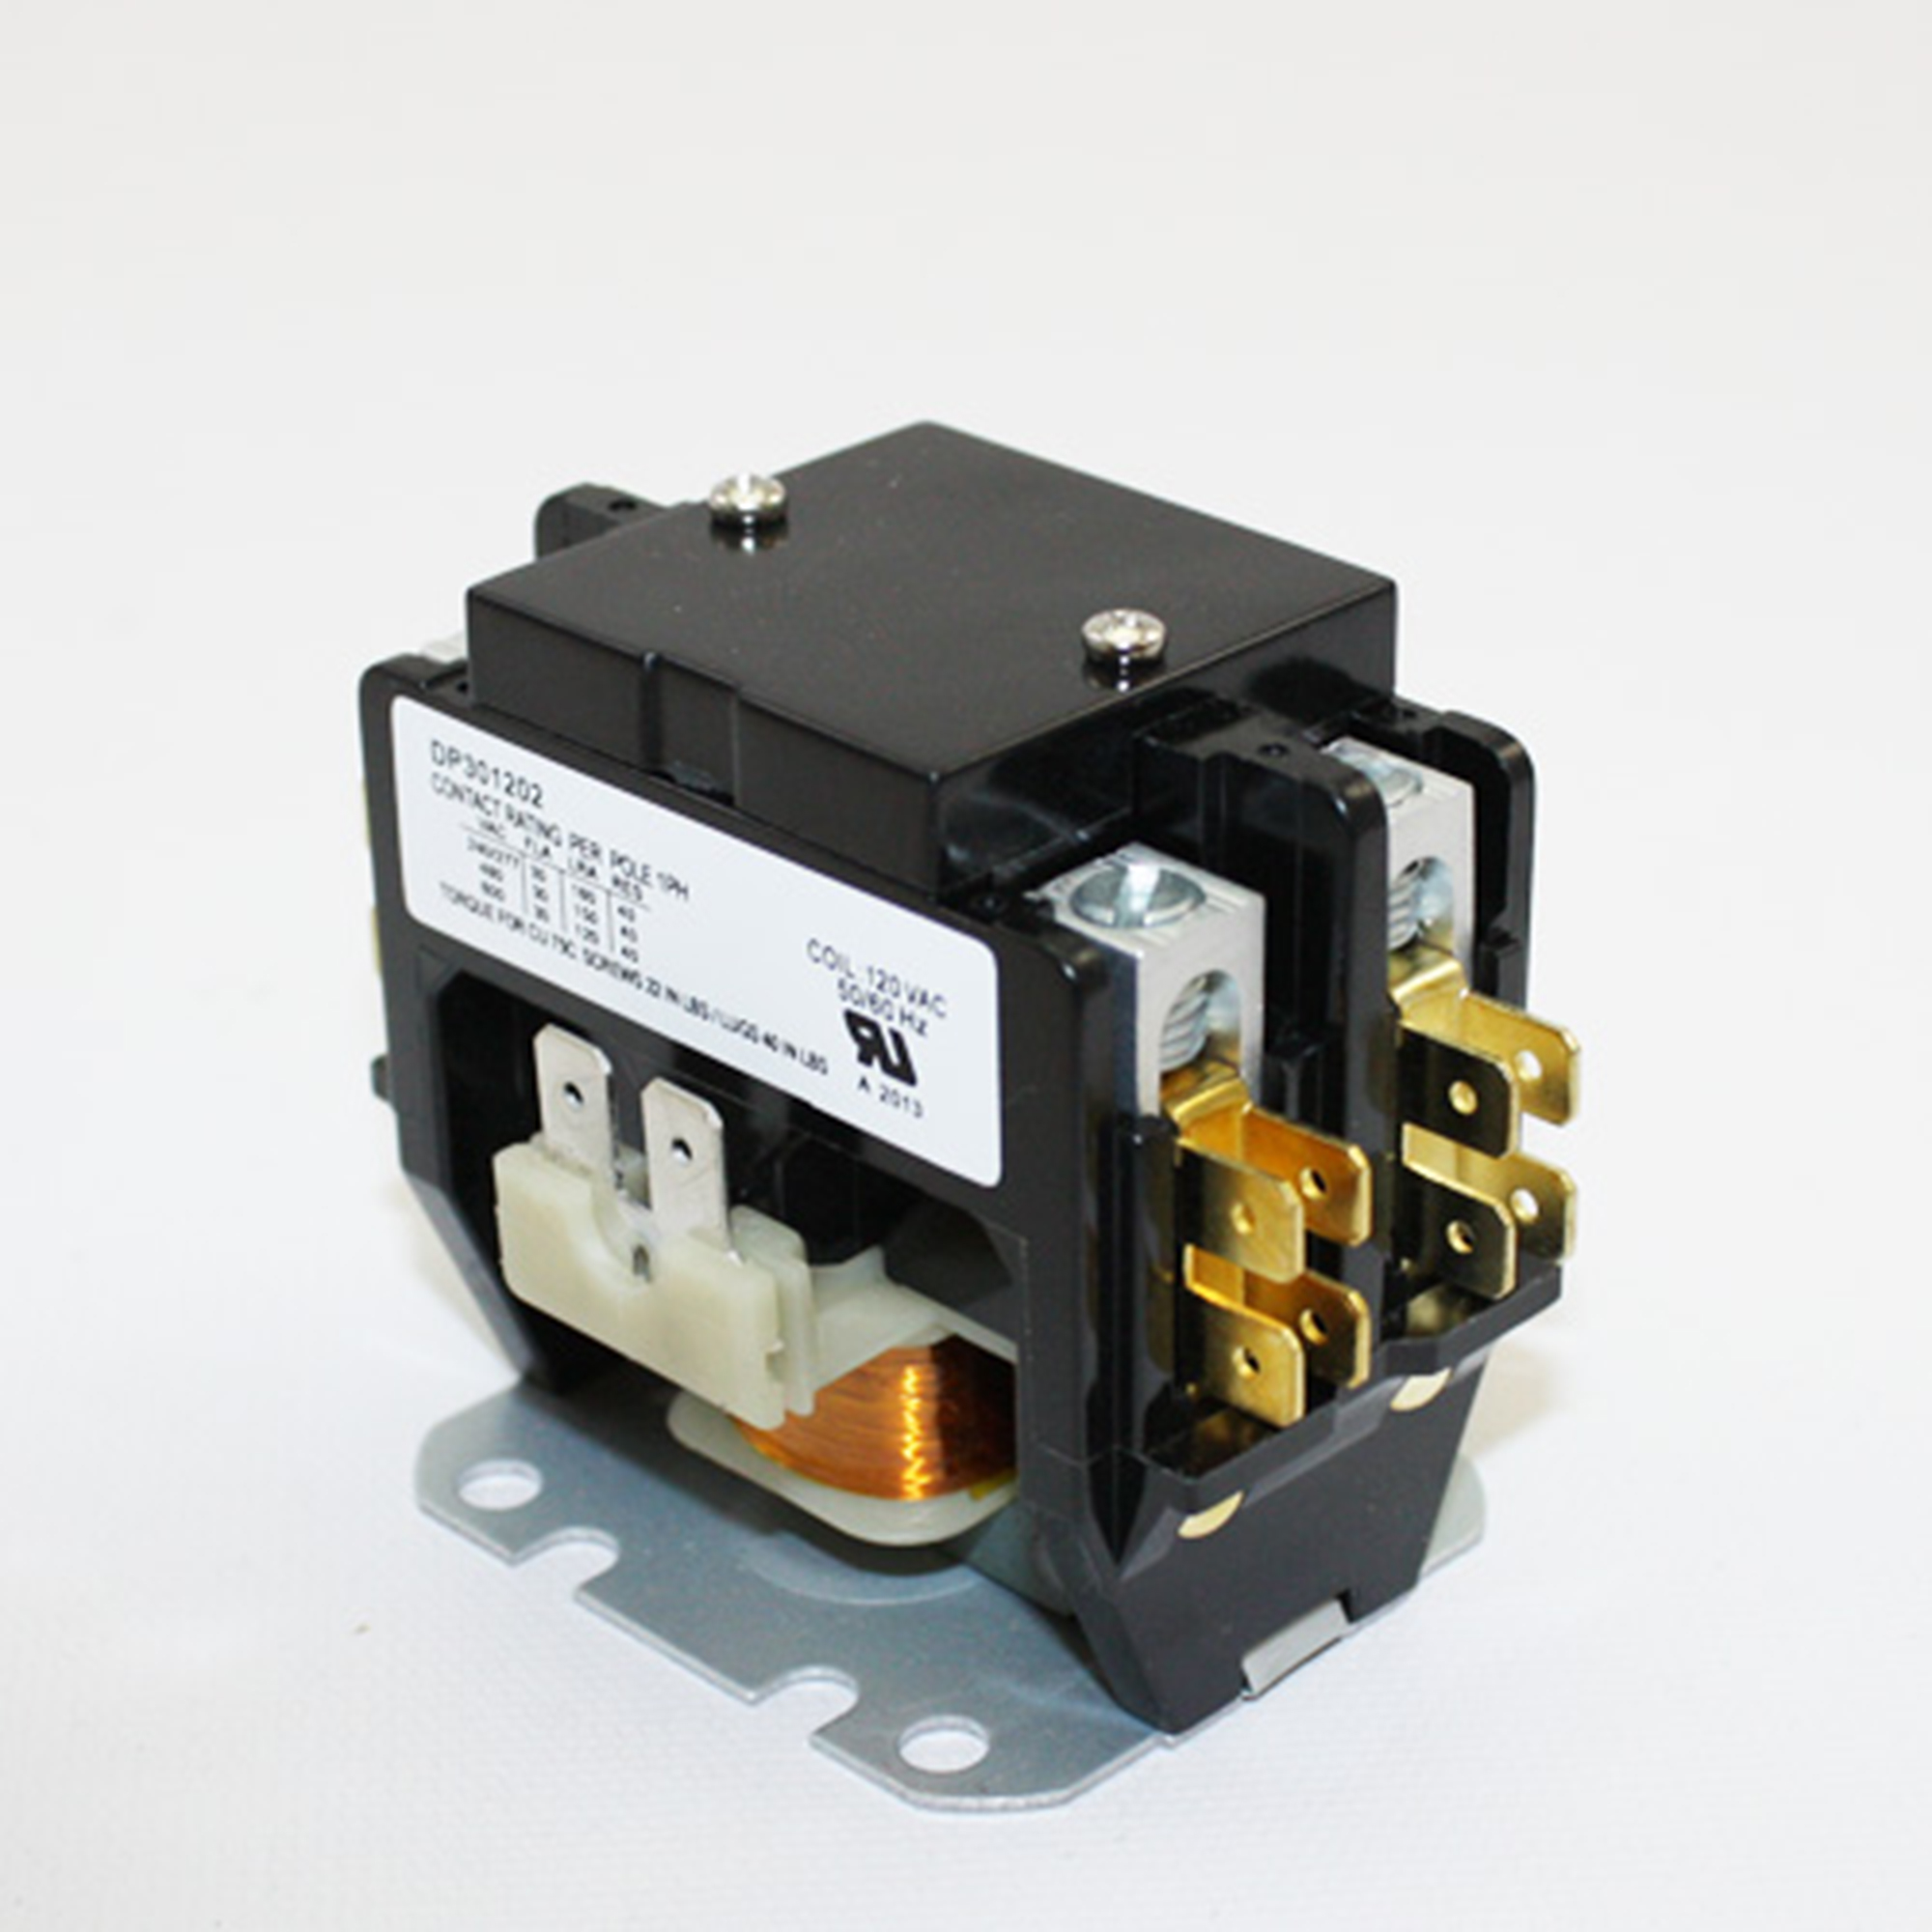 Universal air conditioner 2 pole contactor 30a 120v new for 120v window air conditioner